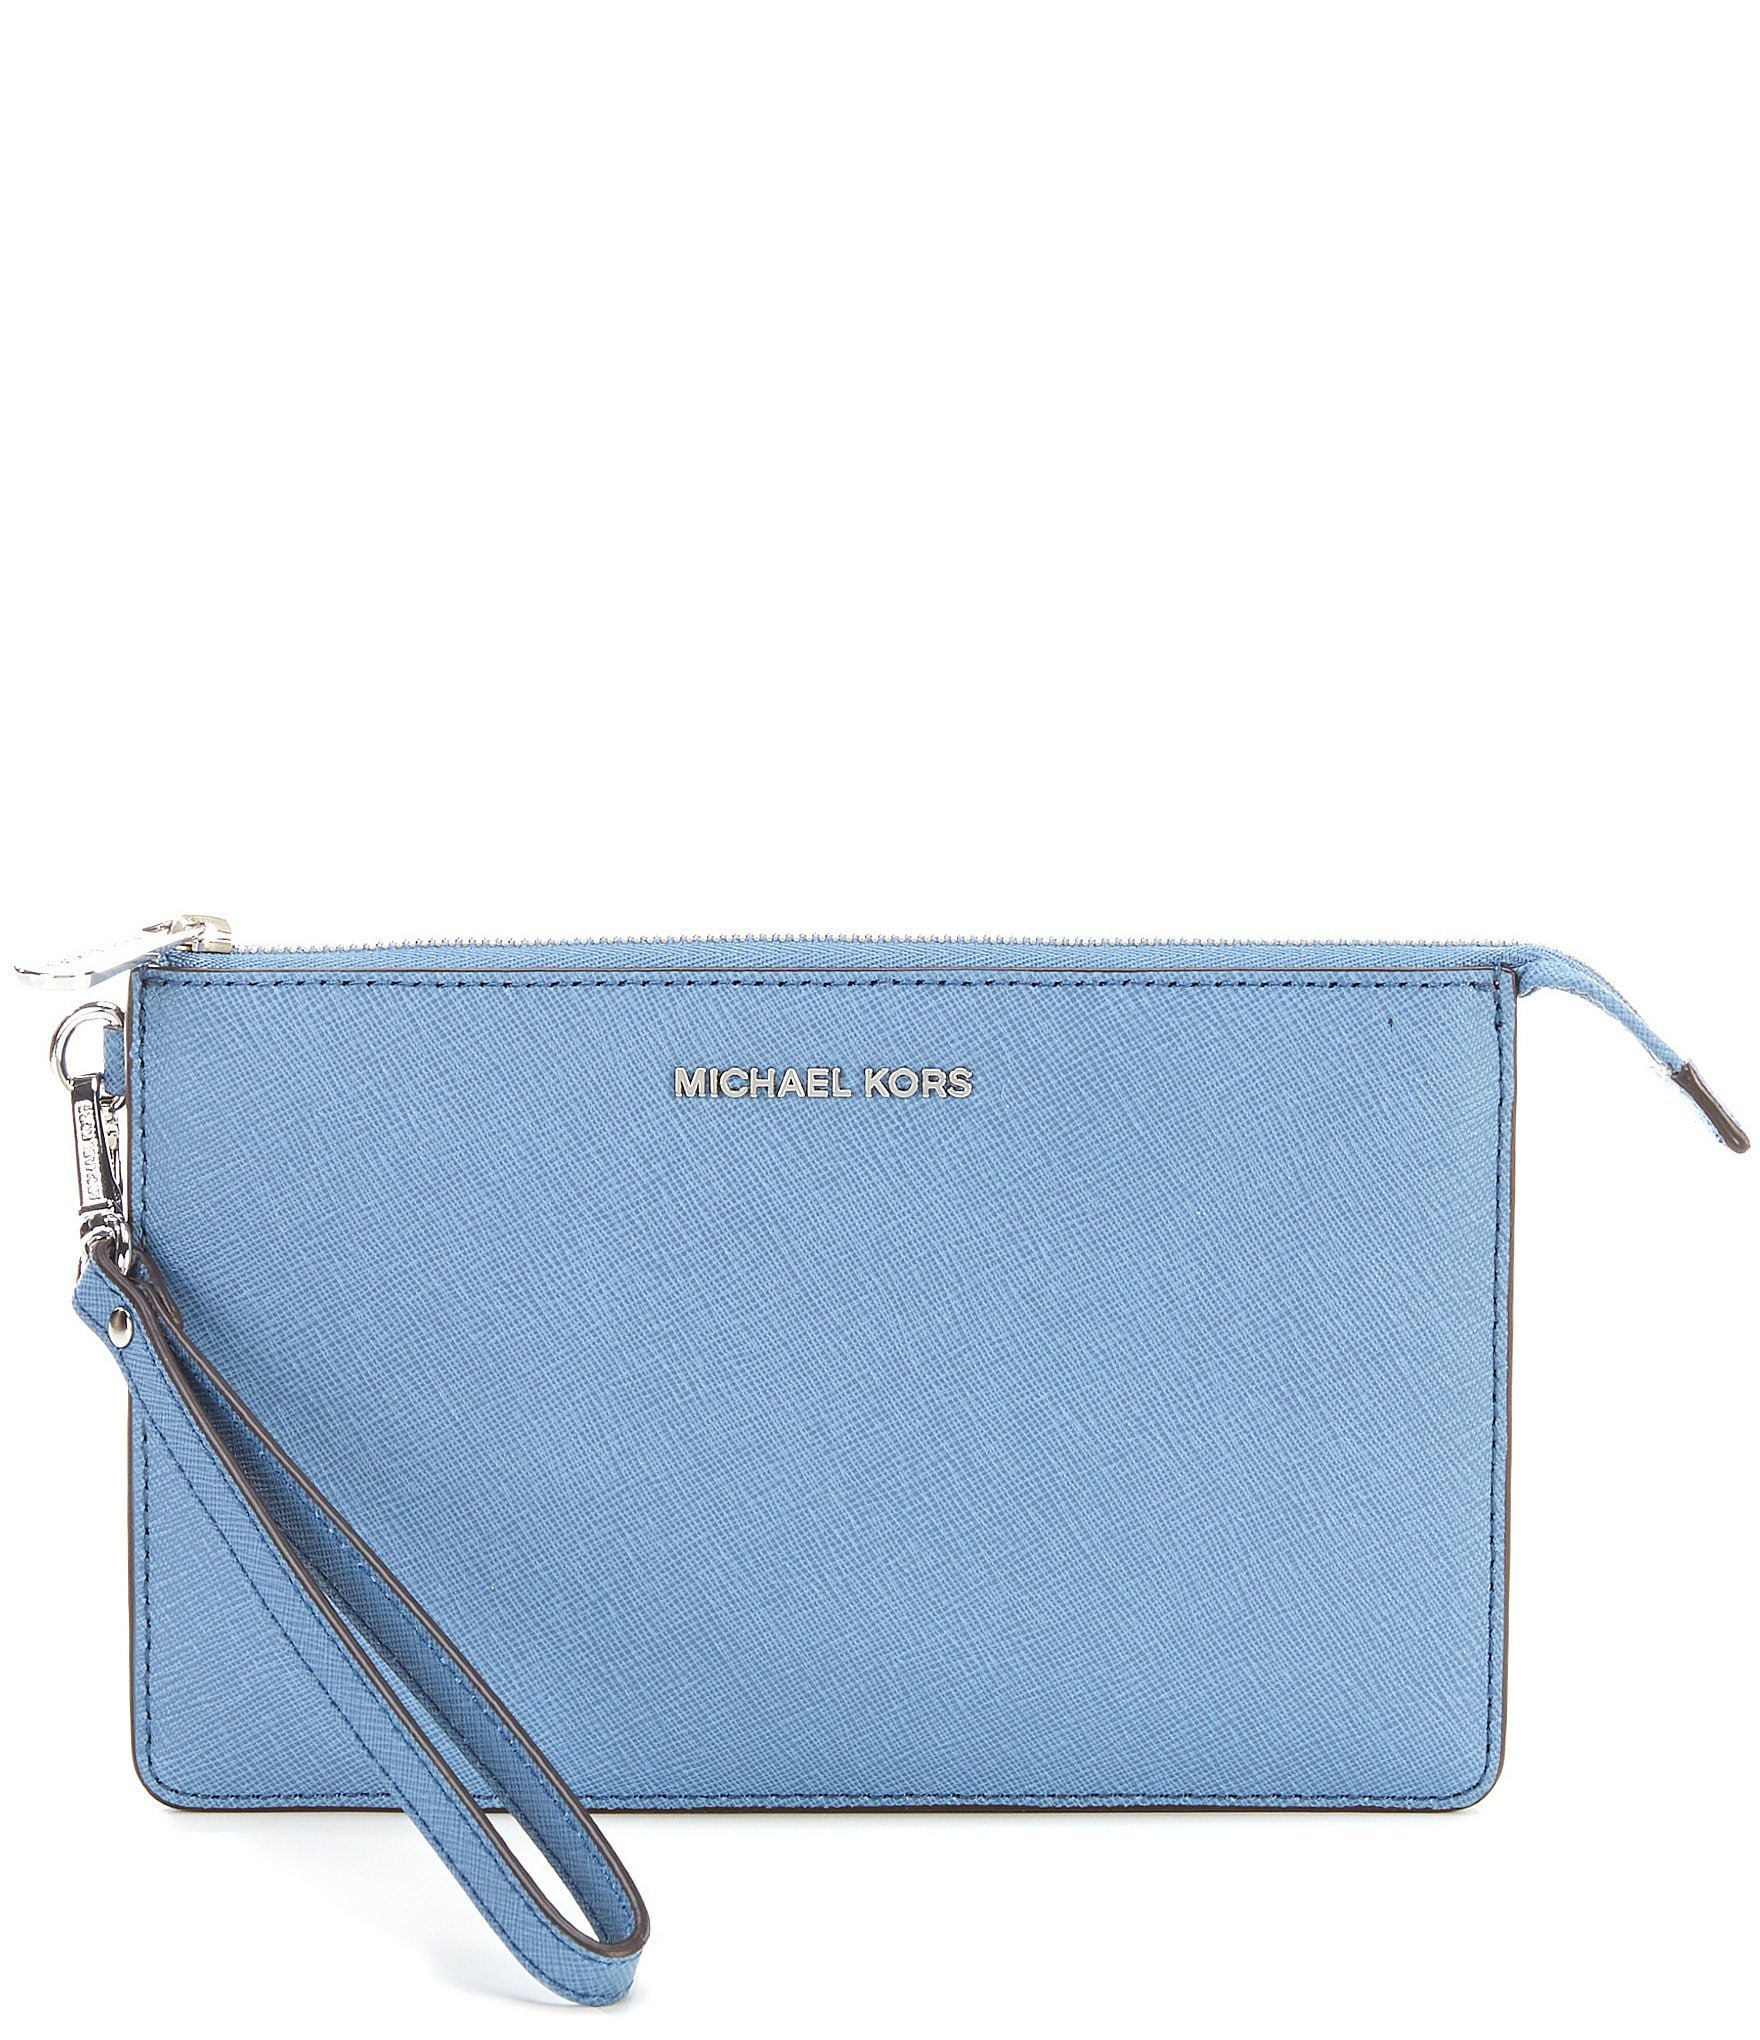 71bc24ec3c35df Buy michael kors electric blue wristlet > OFF64% Discounted